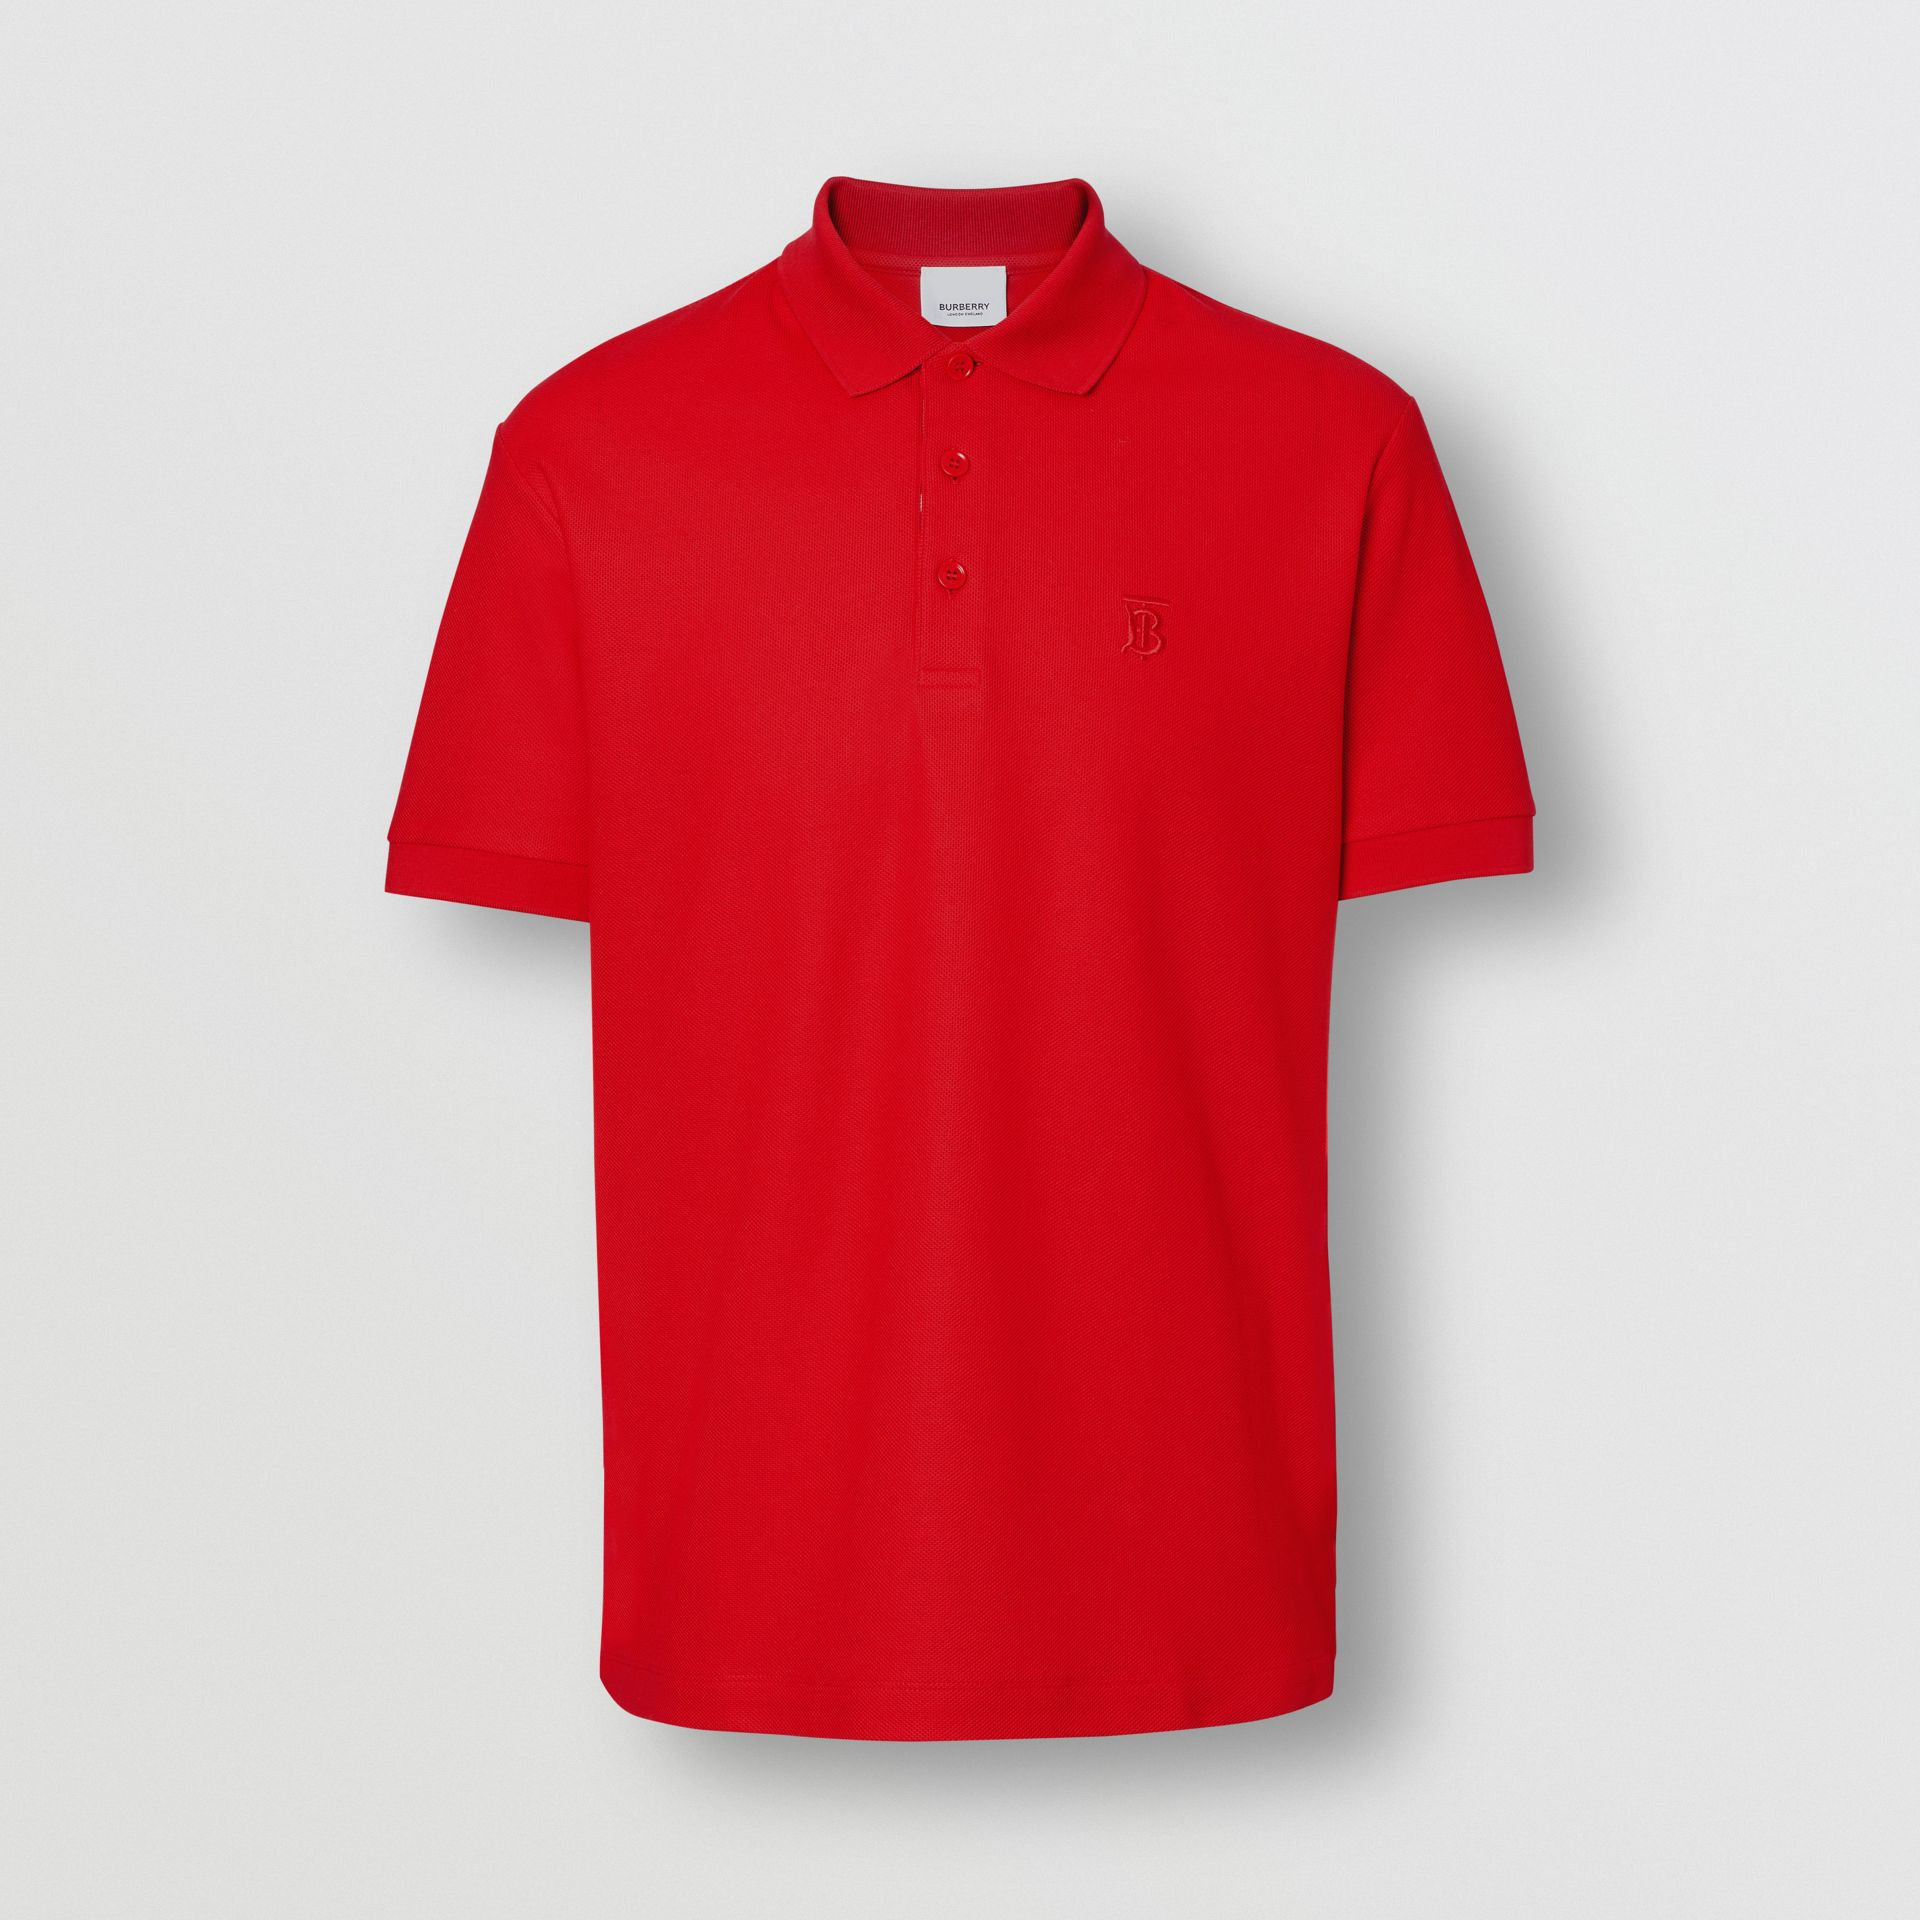 Monogram Motif Cotton Piqué Polo Shirt in Bright Red - Men | Burberry - gallery image 3